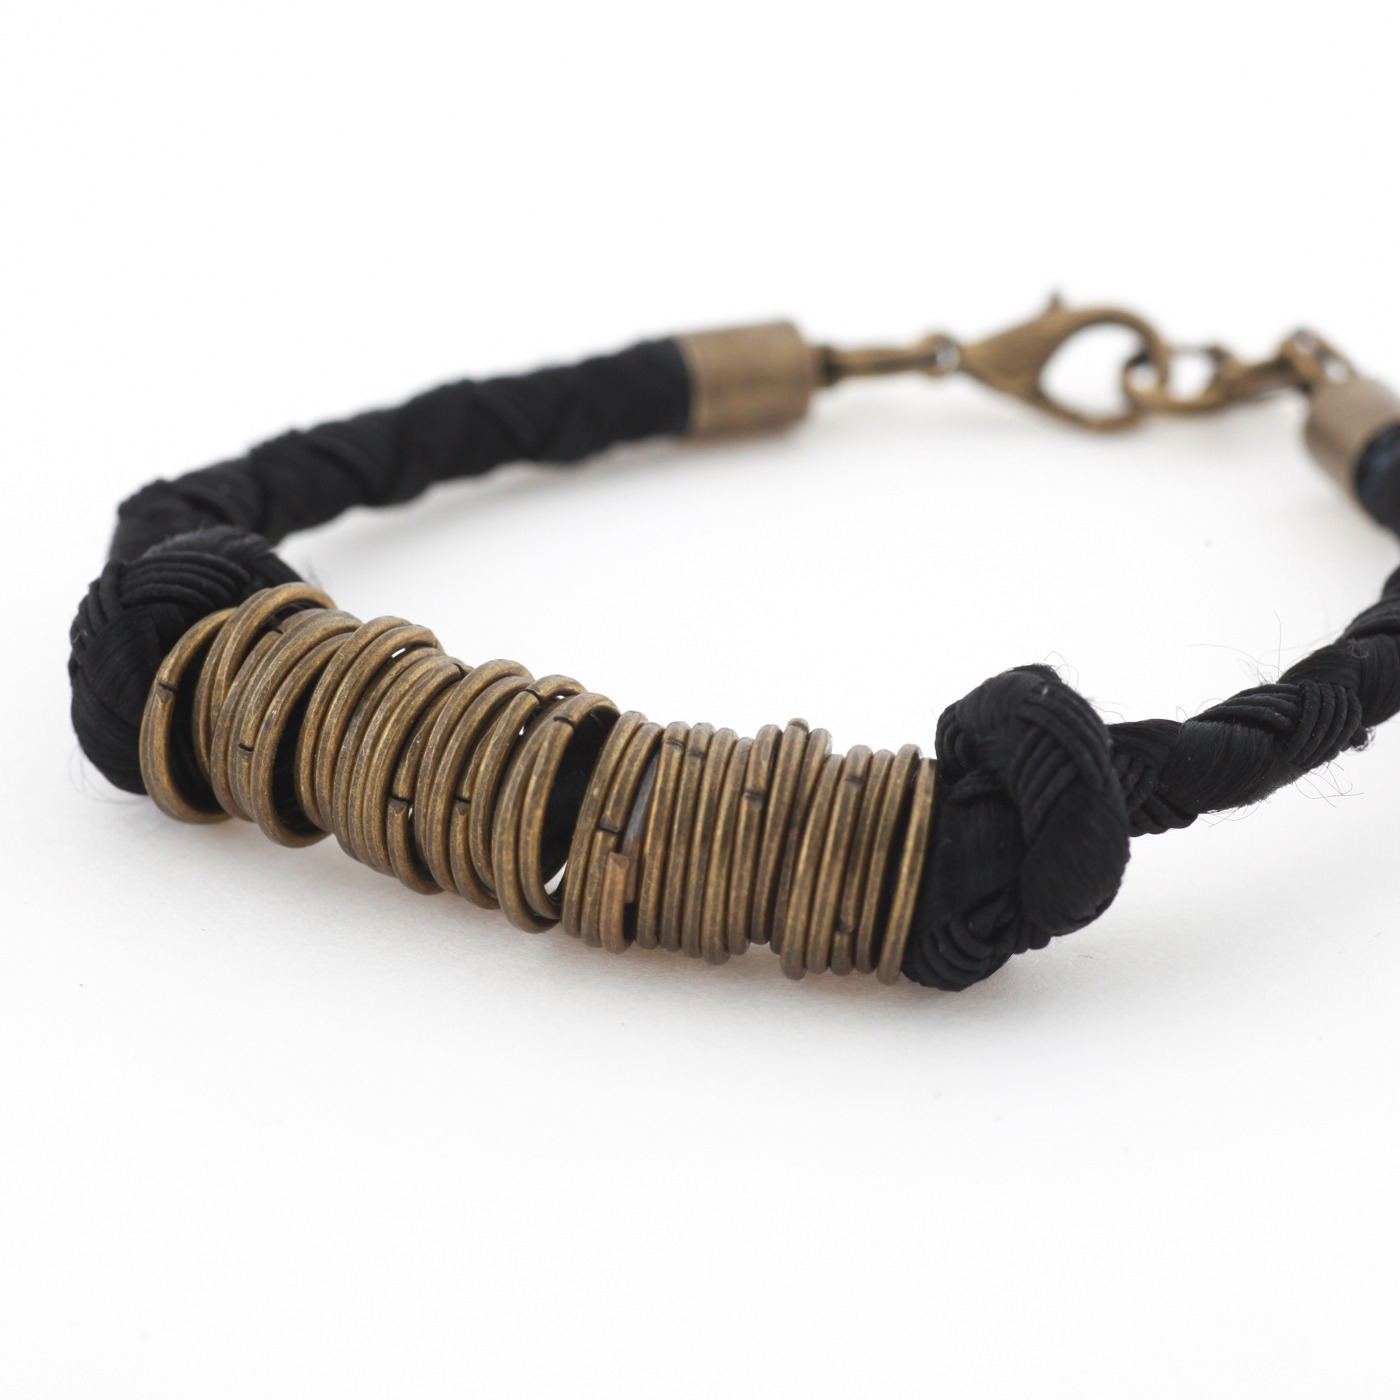 Artisan, Eco-Friendly, Designer Knotical Bracelet